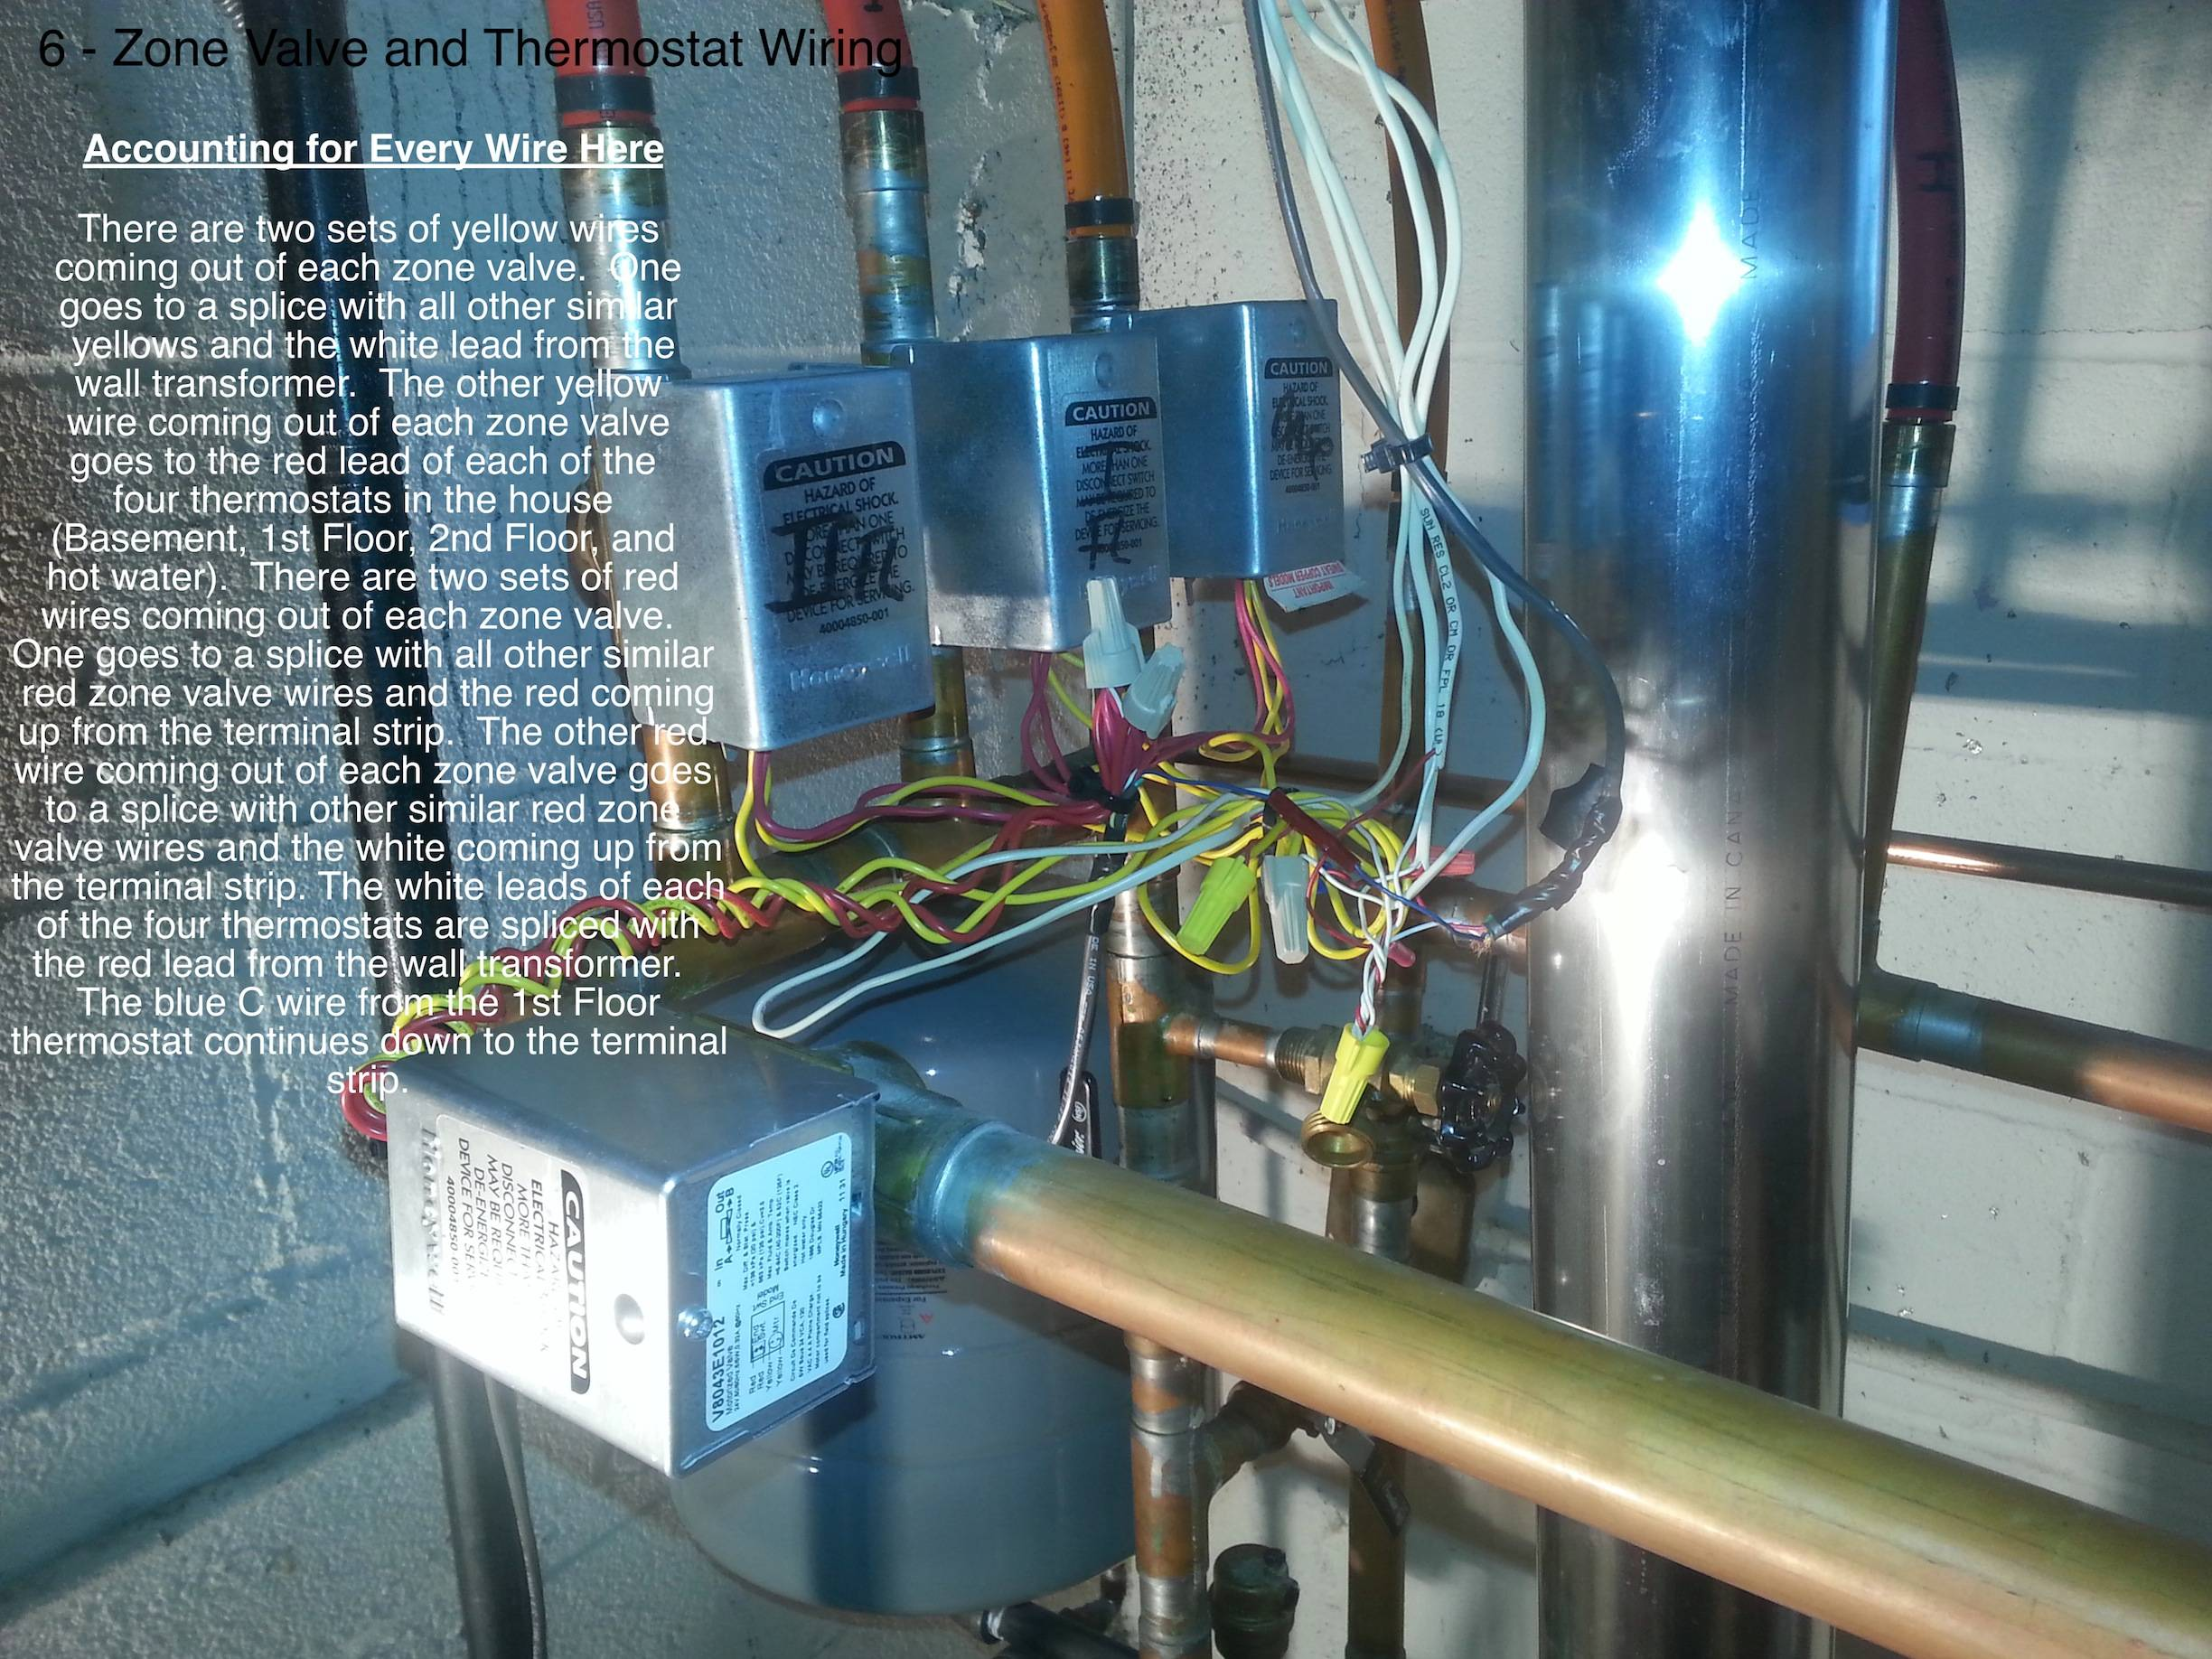 Forced Air Furnace Wiring Diagram Boiler Where Do I Connect My C Wire From My Thermostat